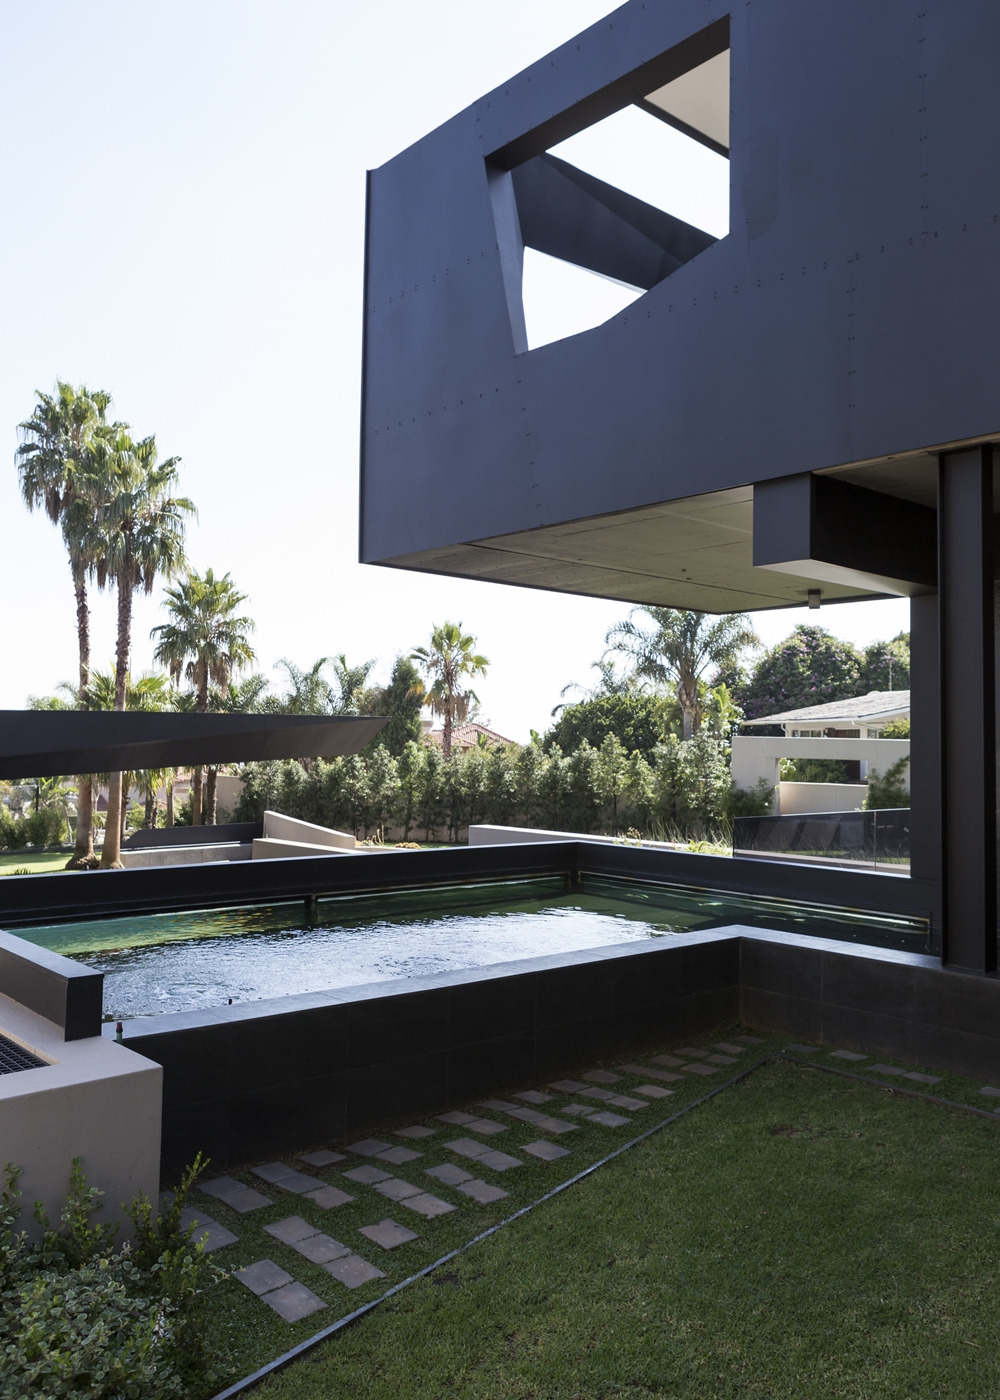 Most Awesome House Ever Elegant Best Houses In the World Amazing Kloof Road House